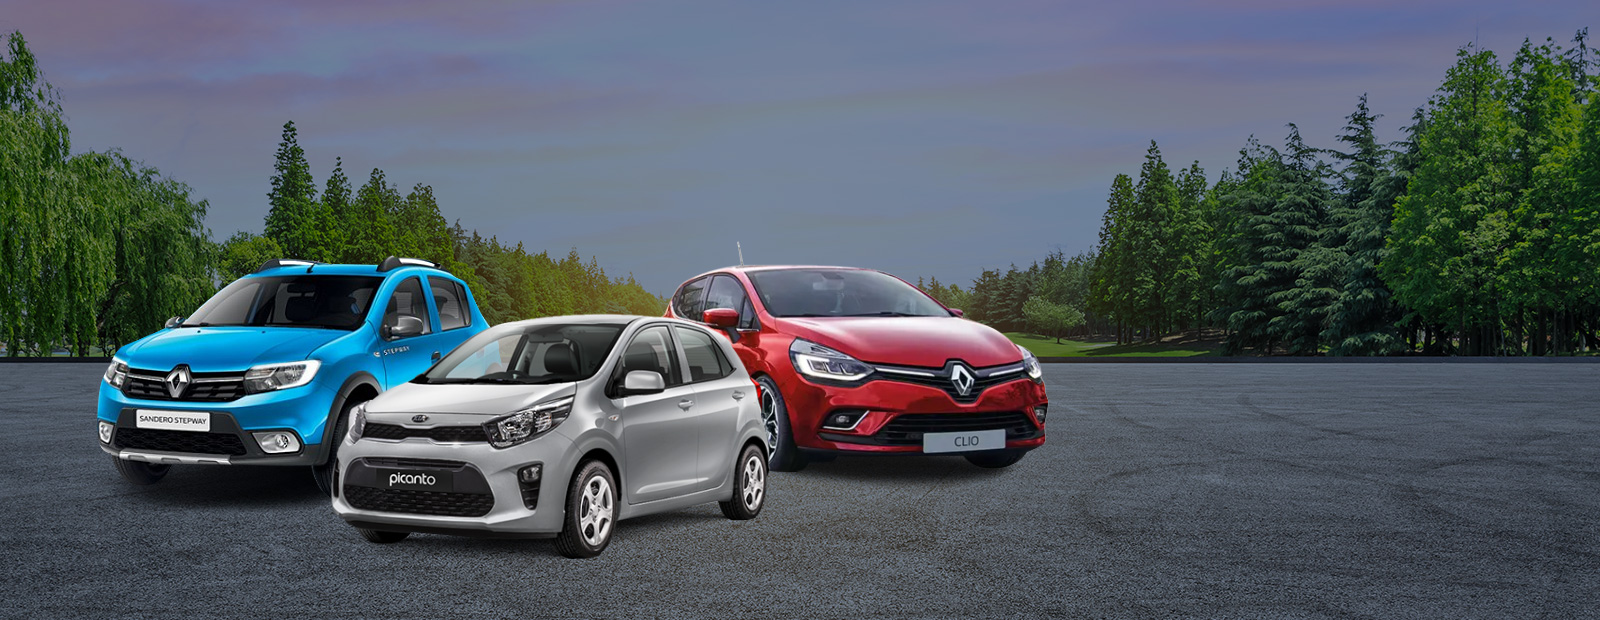 1 YEAR OLD VEHICLES UNDER R200,000